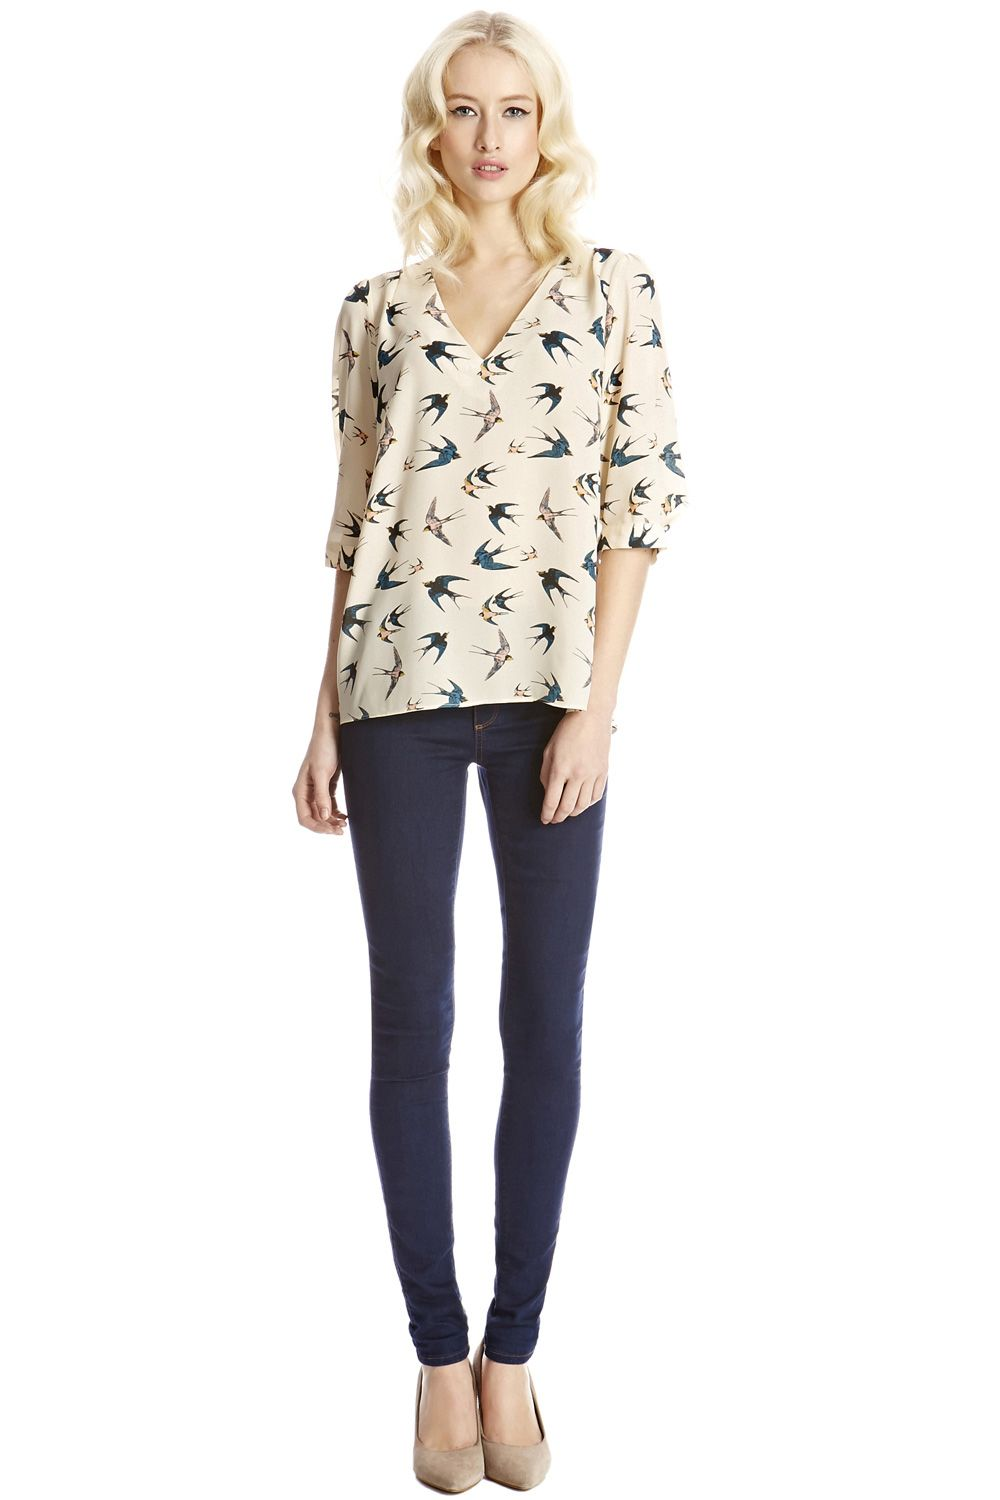 Bird print tabby top